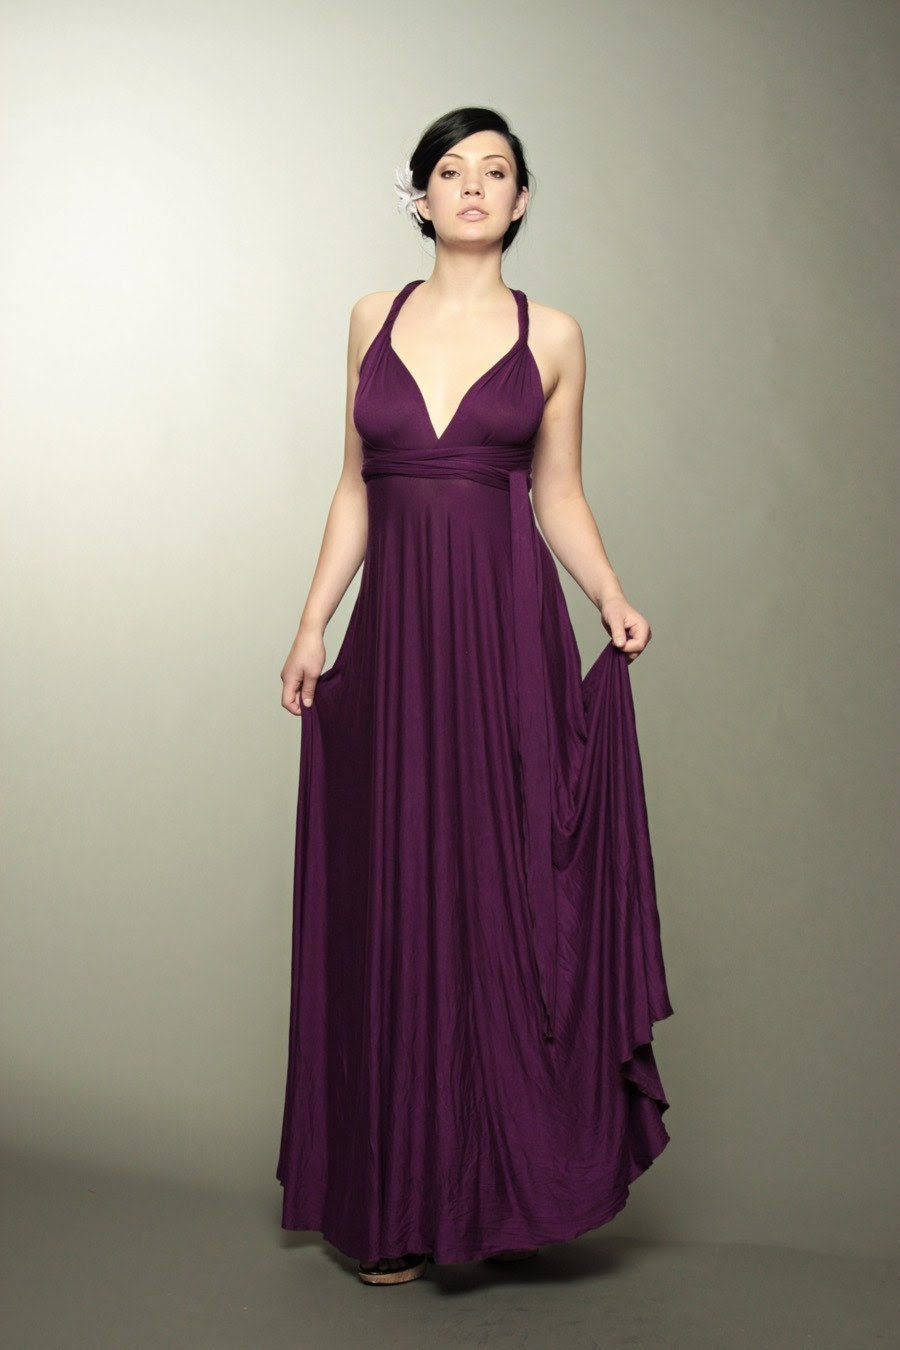 Chameleon Gown- Full length- Rayon jersey- Made to order- Any Color